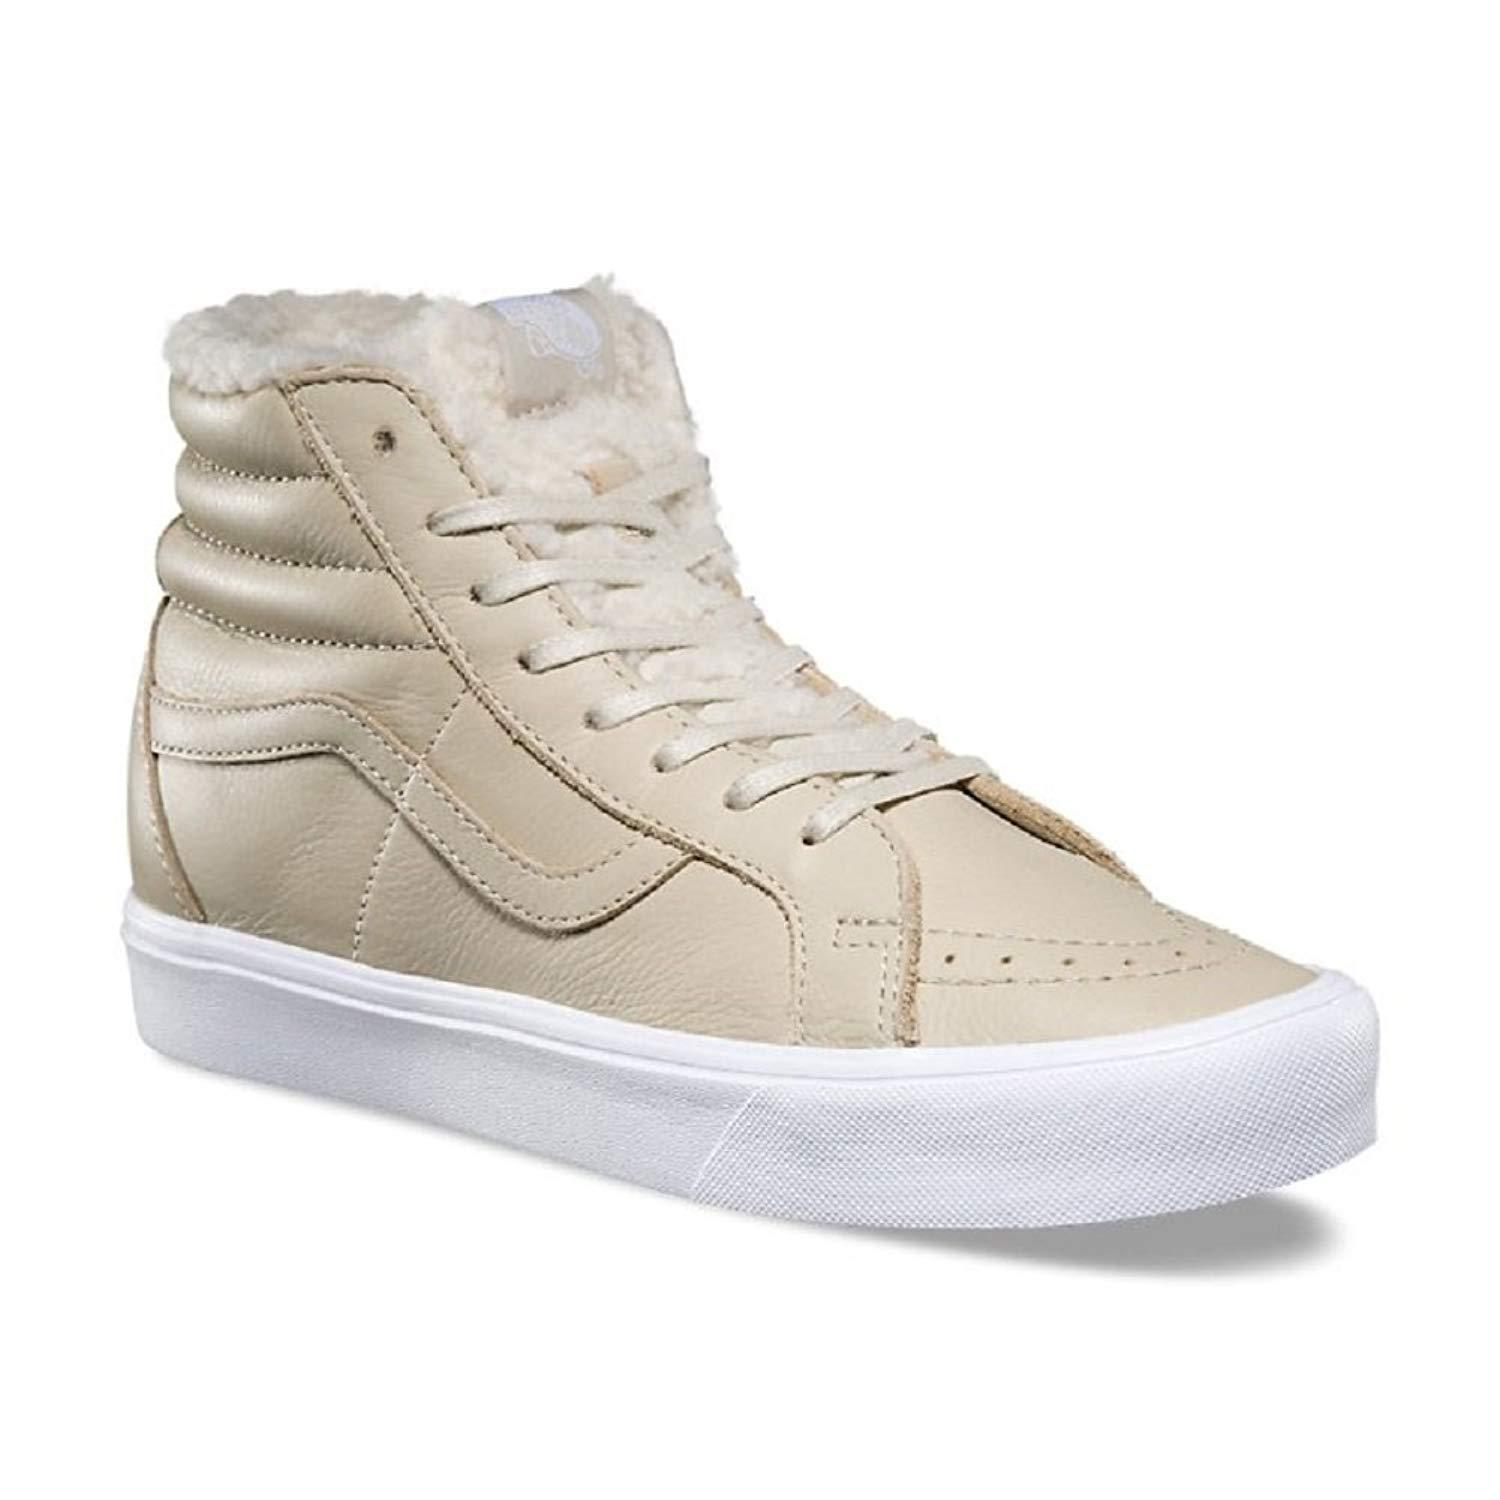 Primary image for Vans Sk8 Hi Reissue Lite (Sherpa) Cement True White Faux Fur Warm Men's 8.5